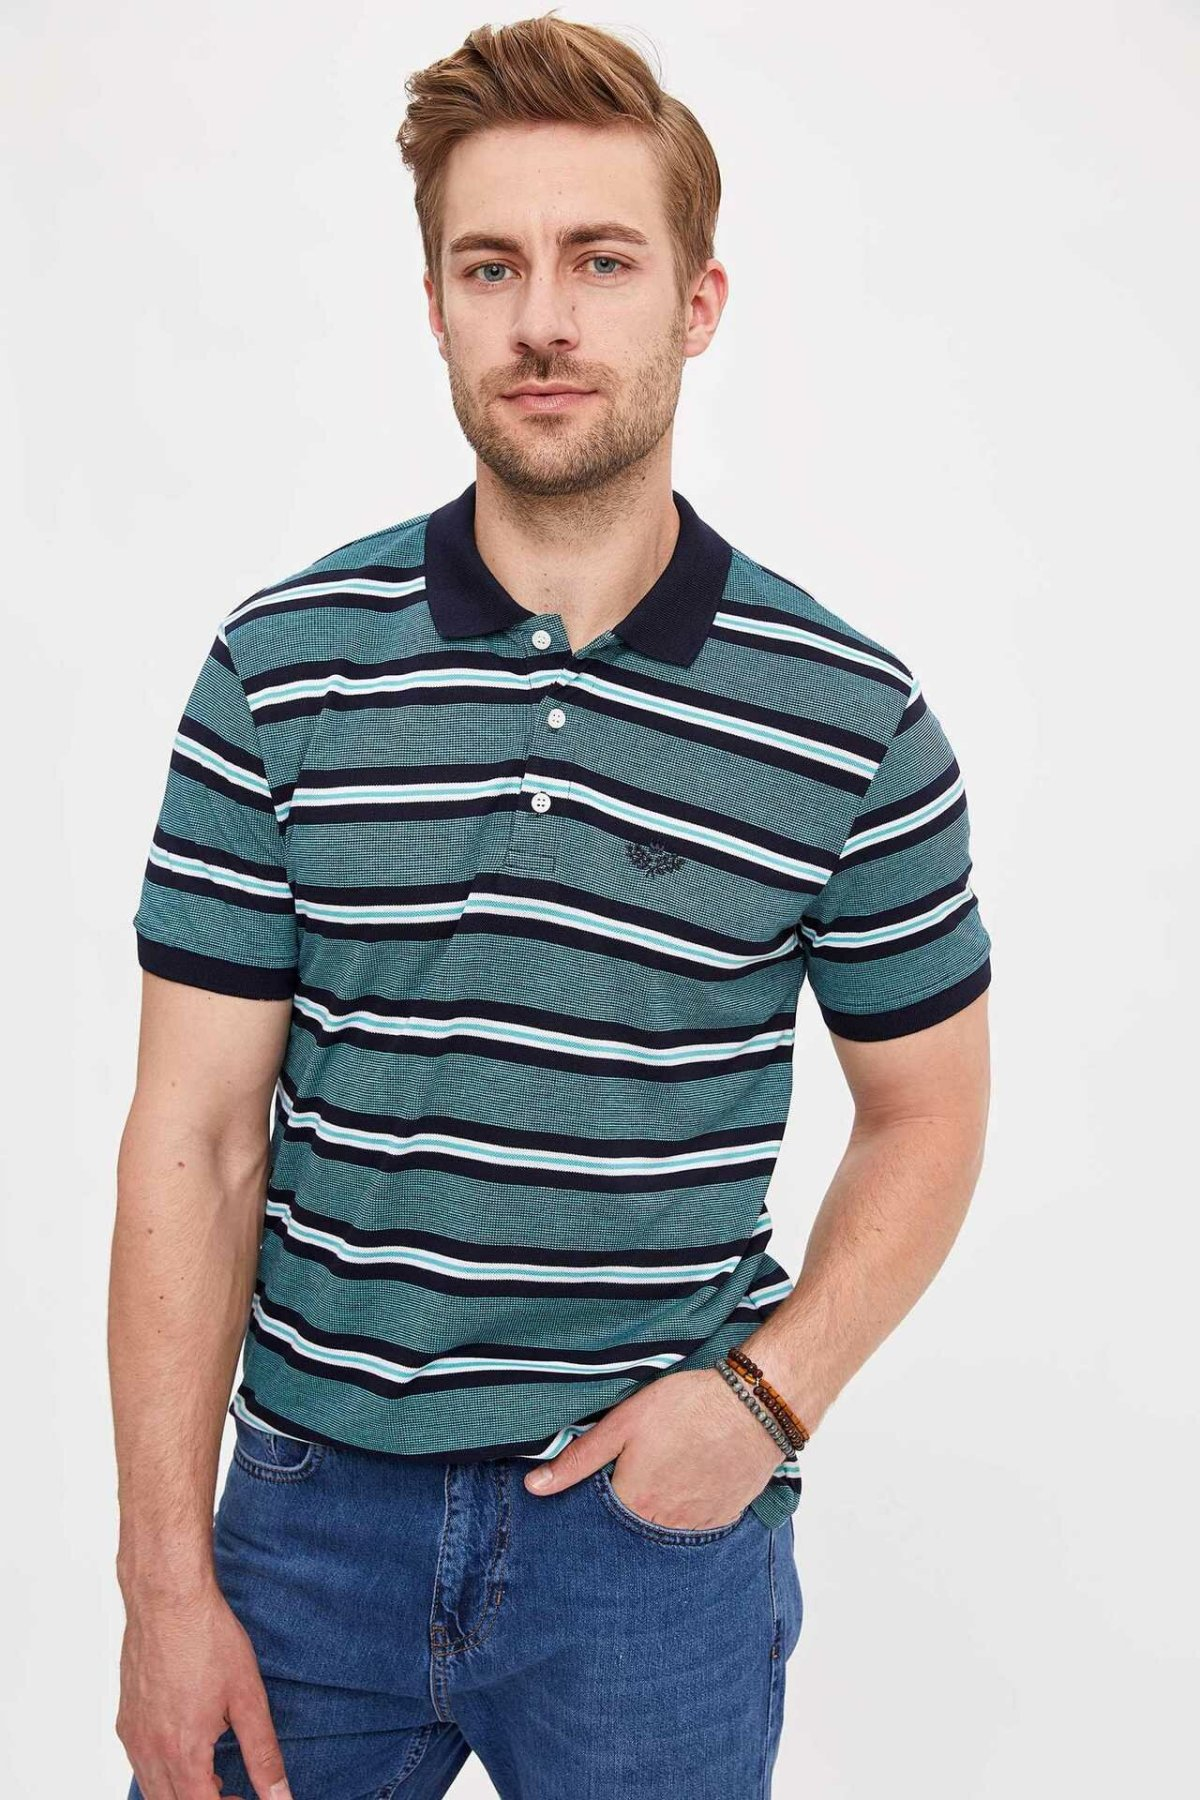 DeFacto Man Striped Knitted Polo Shirt Men Fit Slim Short Sleeve Polo Shirts Casual Homme Top Cloth-L0230AZ19SM